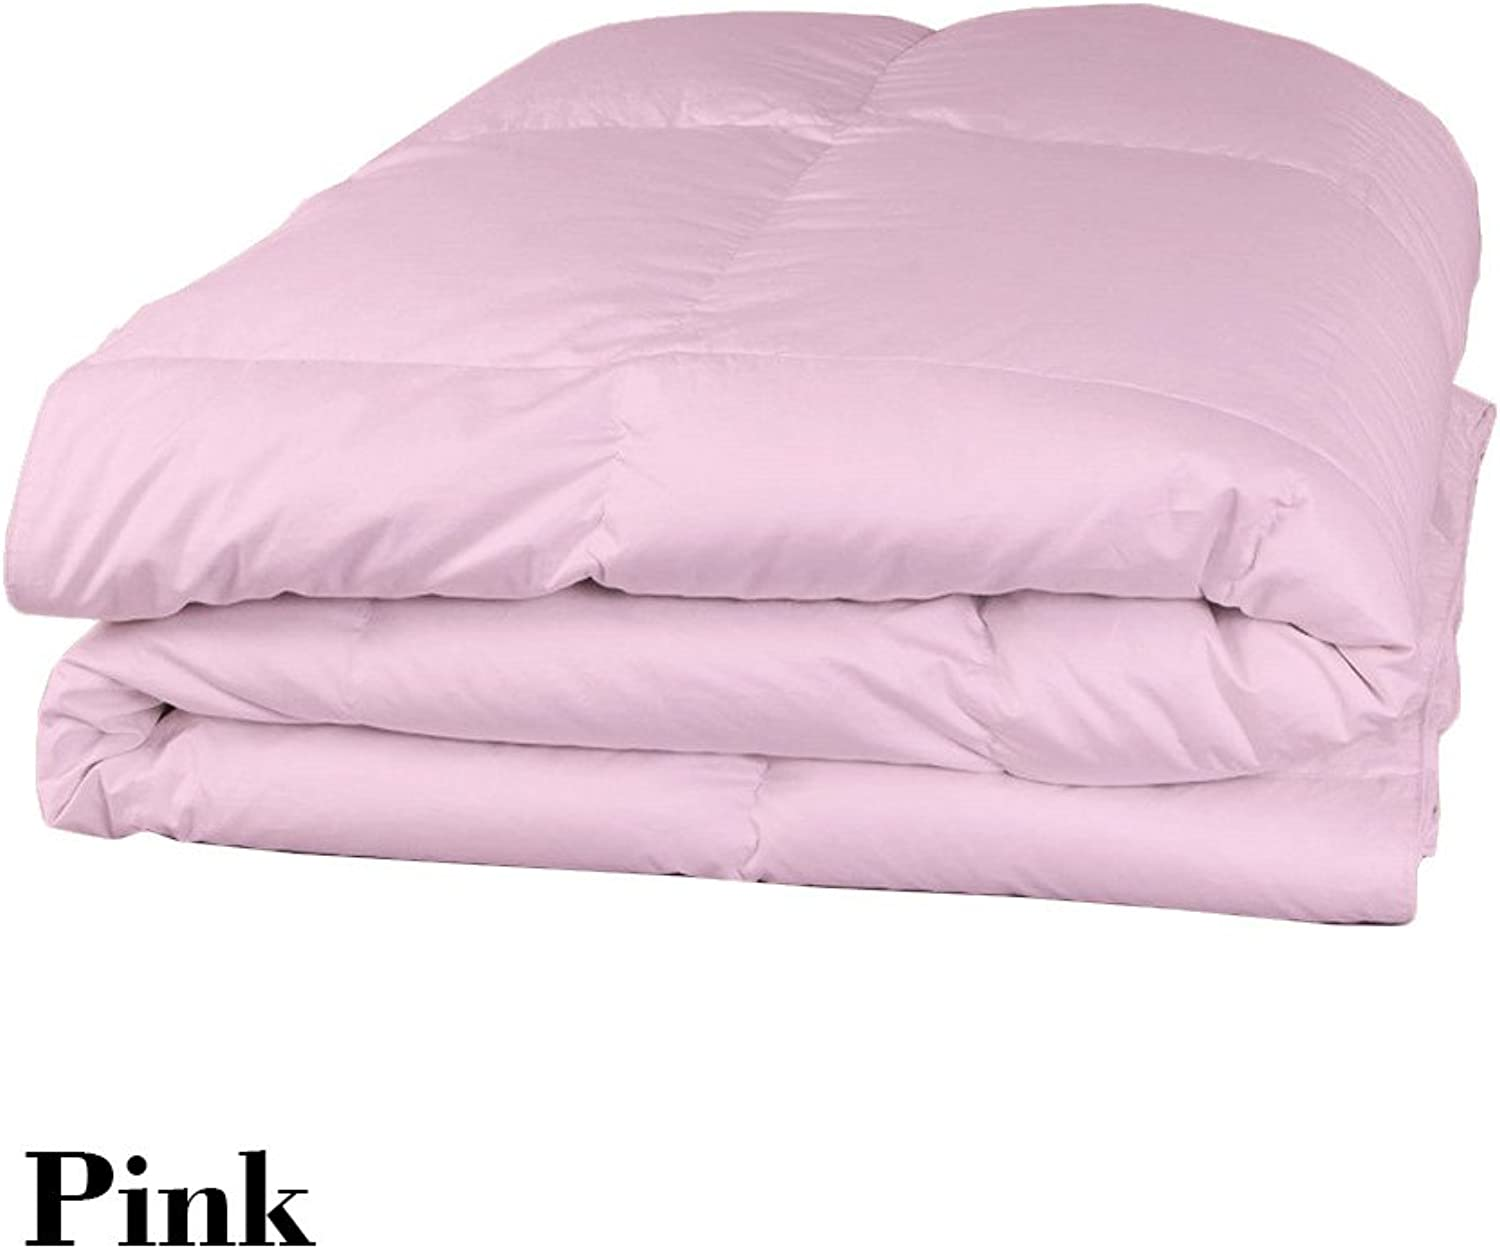 Dreamz Parure de lit Super Doux 550Fils 100% Coton 1Housse de Couette (100g m2 Fibre Fill) Single Long, Rose Solide Coton égypcravaten 550tc Doudou